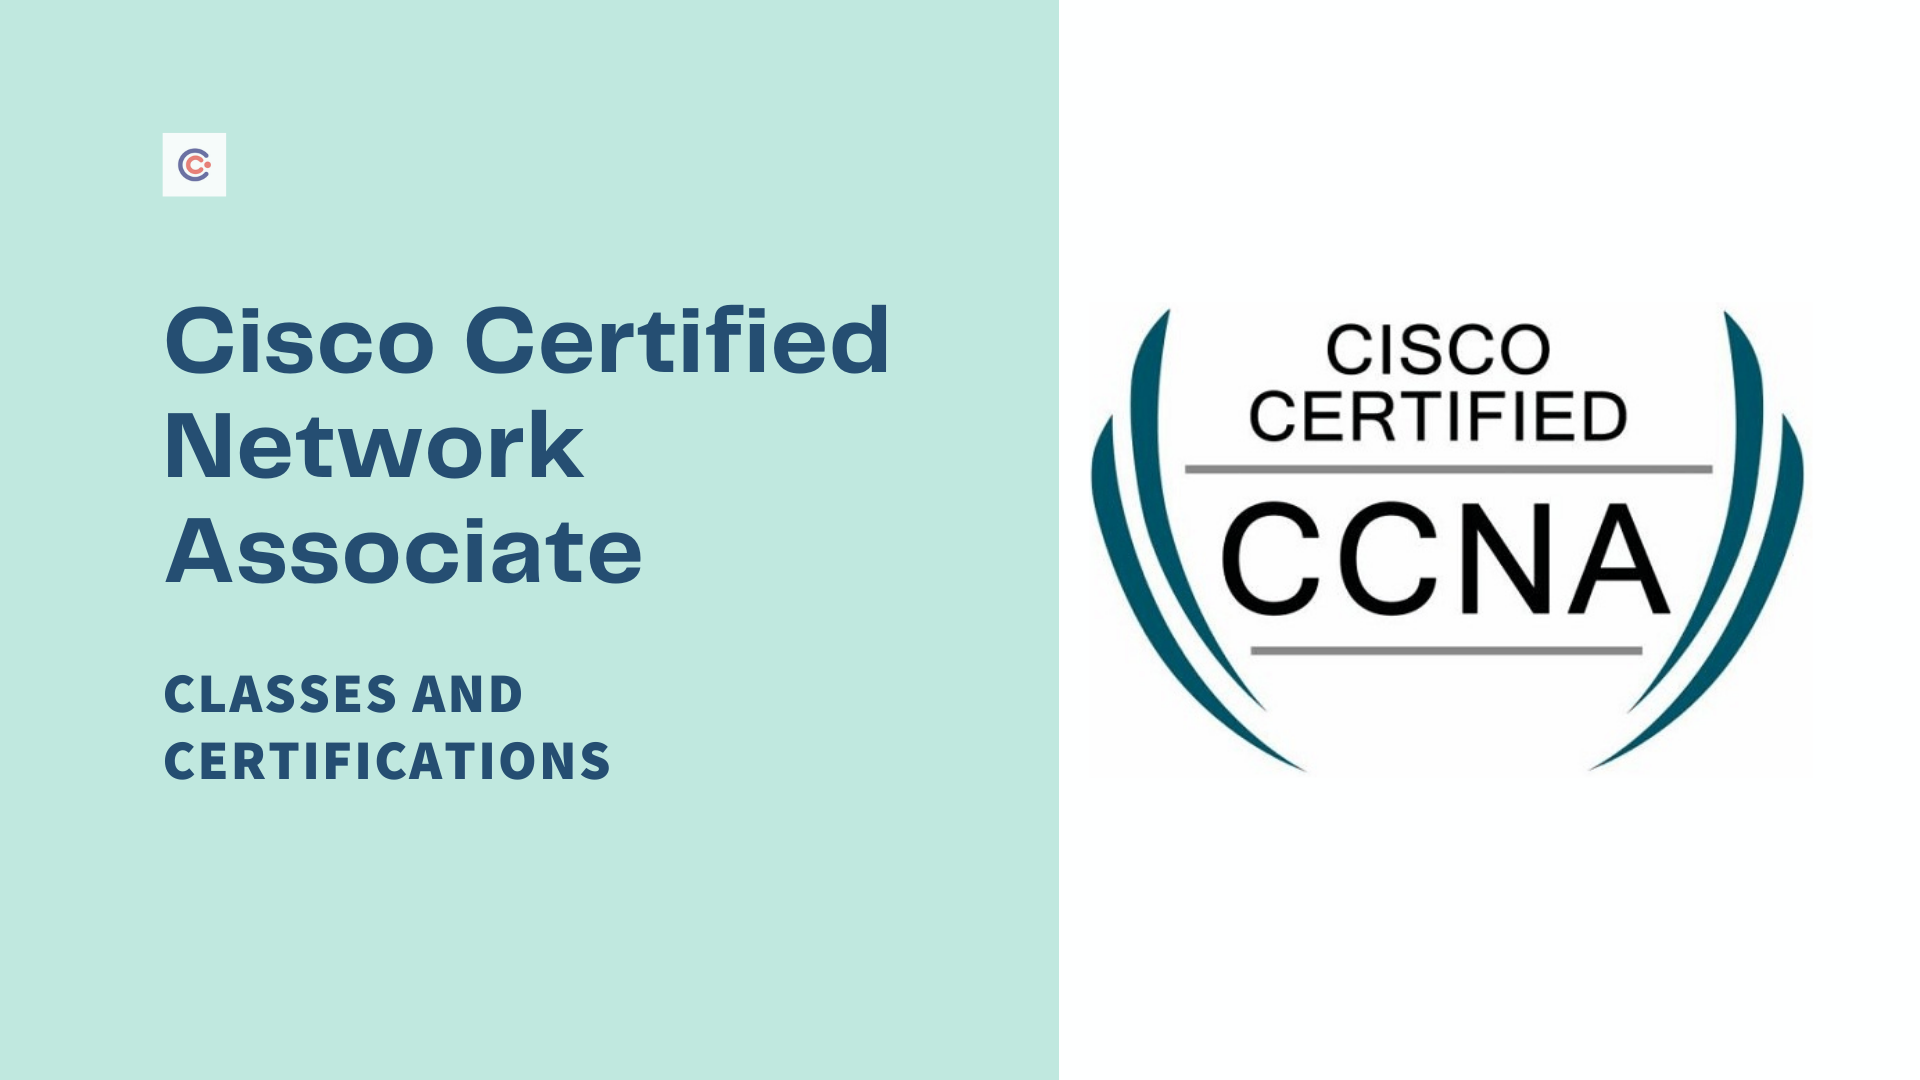 7 Best CCNA Classes and Certifications - Learn CCNA Online